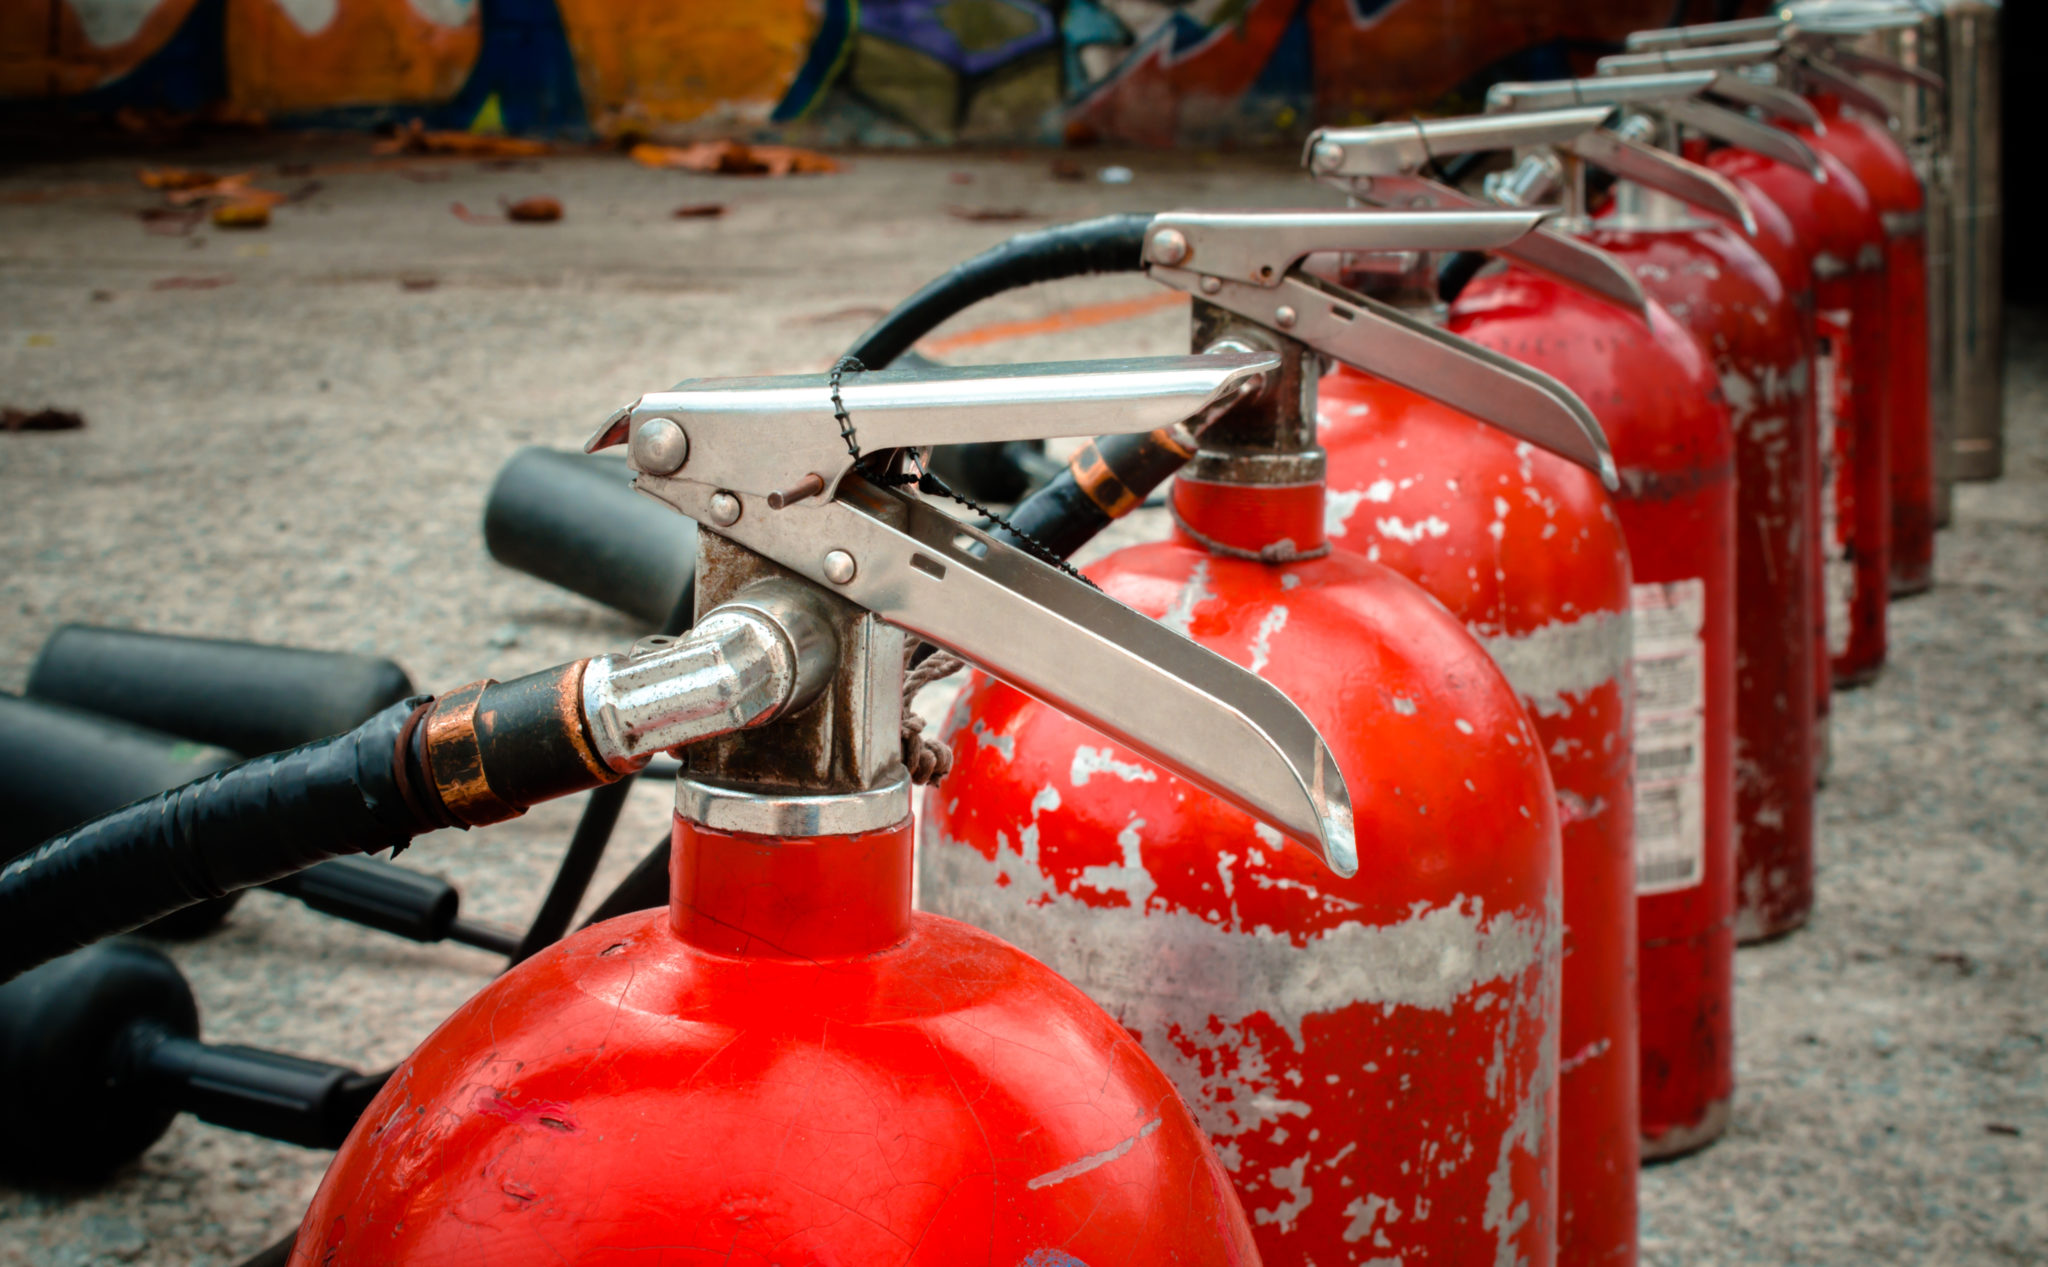 Learn how to know when to replace your fire extinguisher.